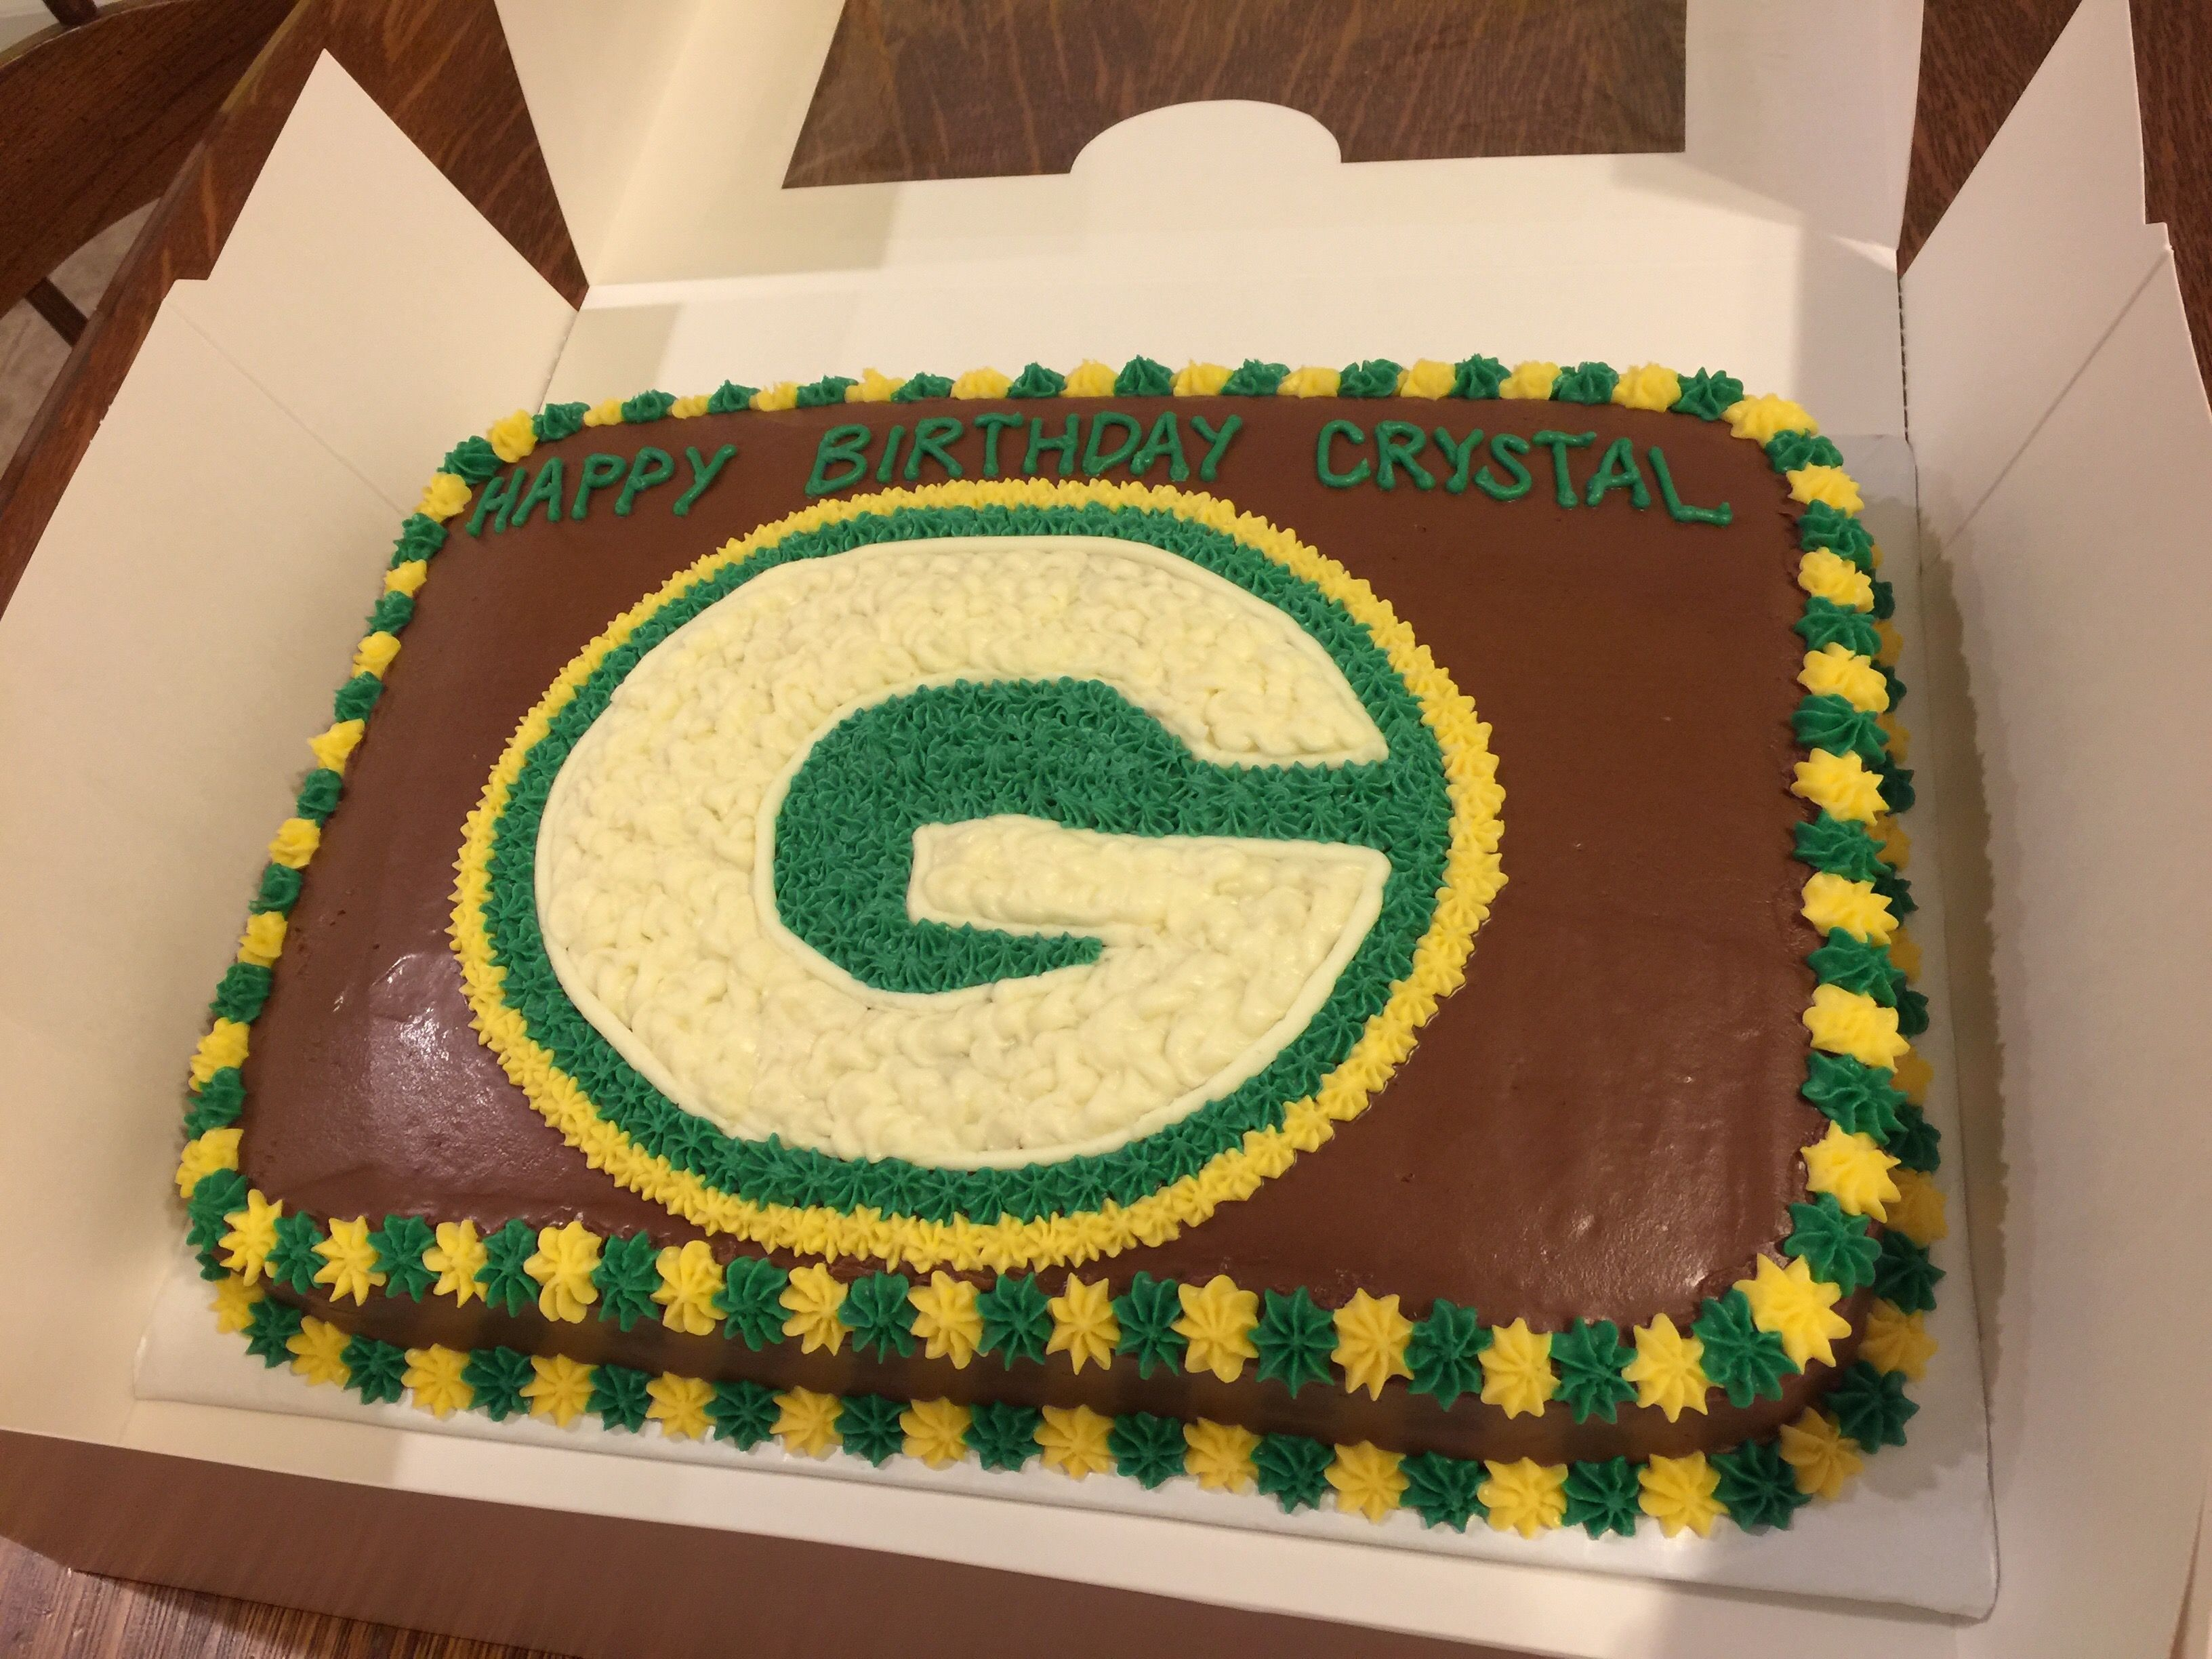 This Green Bay Birthday Cake Is For The Avid Packers